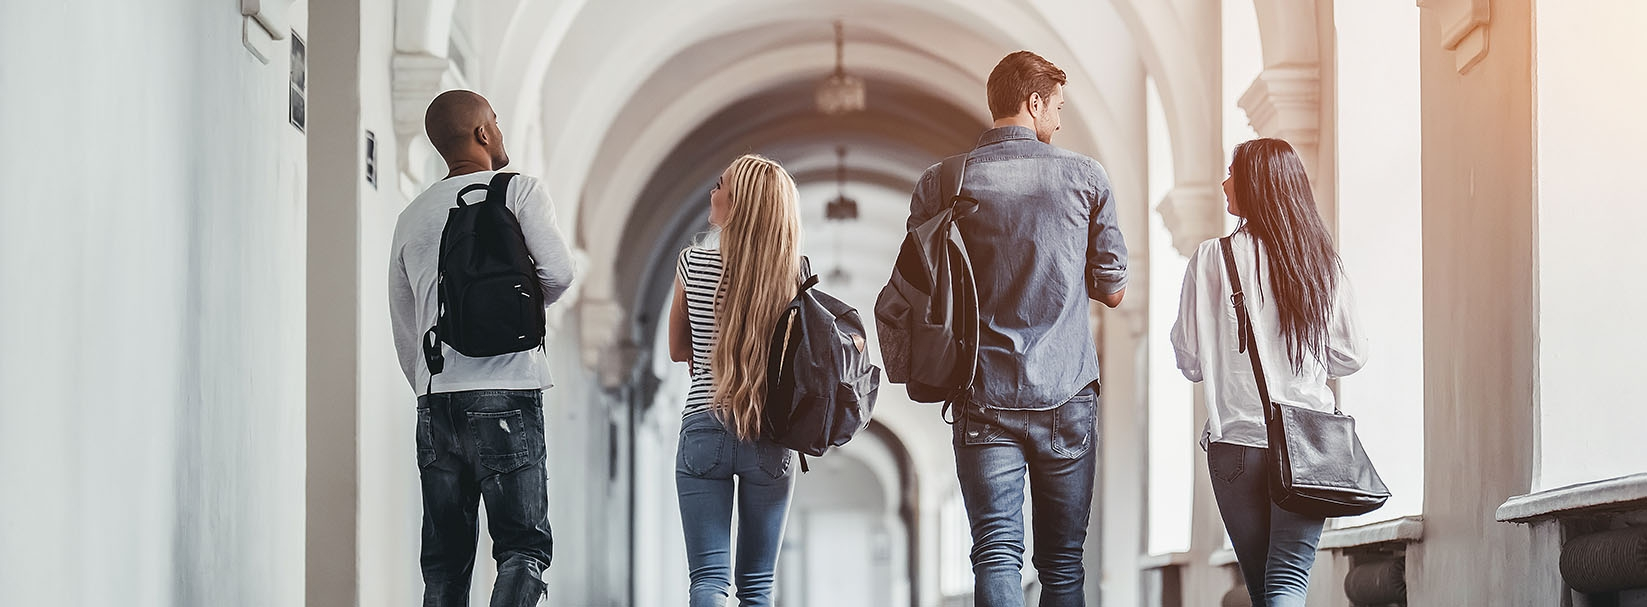 Spotlight shines on Student Accommodation as International Students continue to flock to Oz